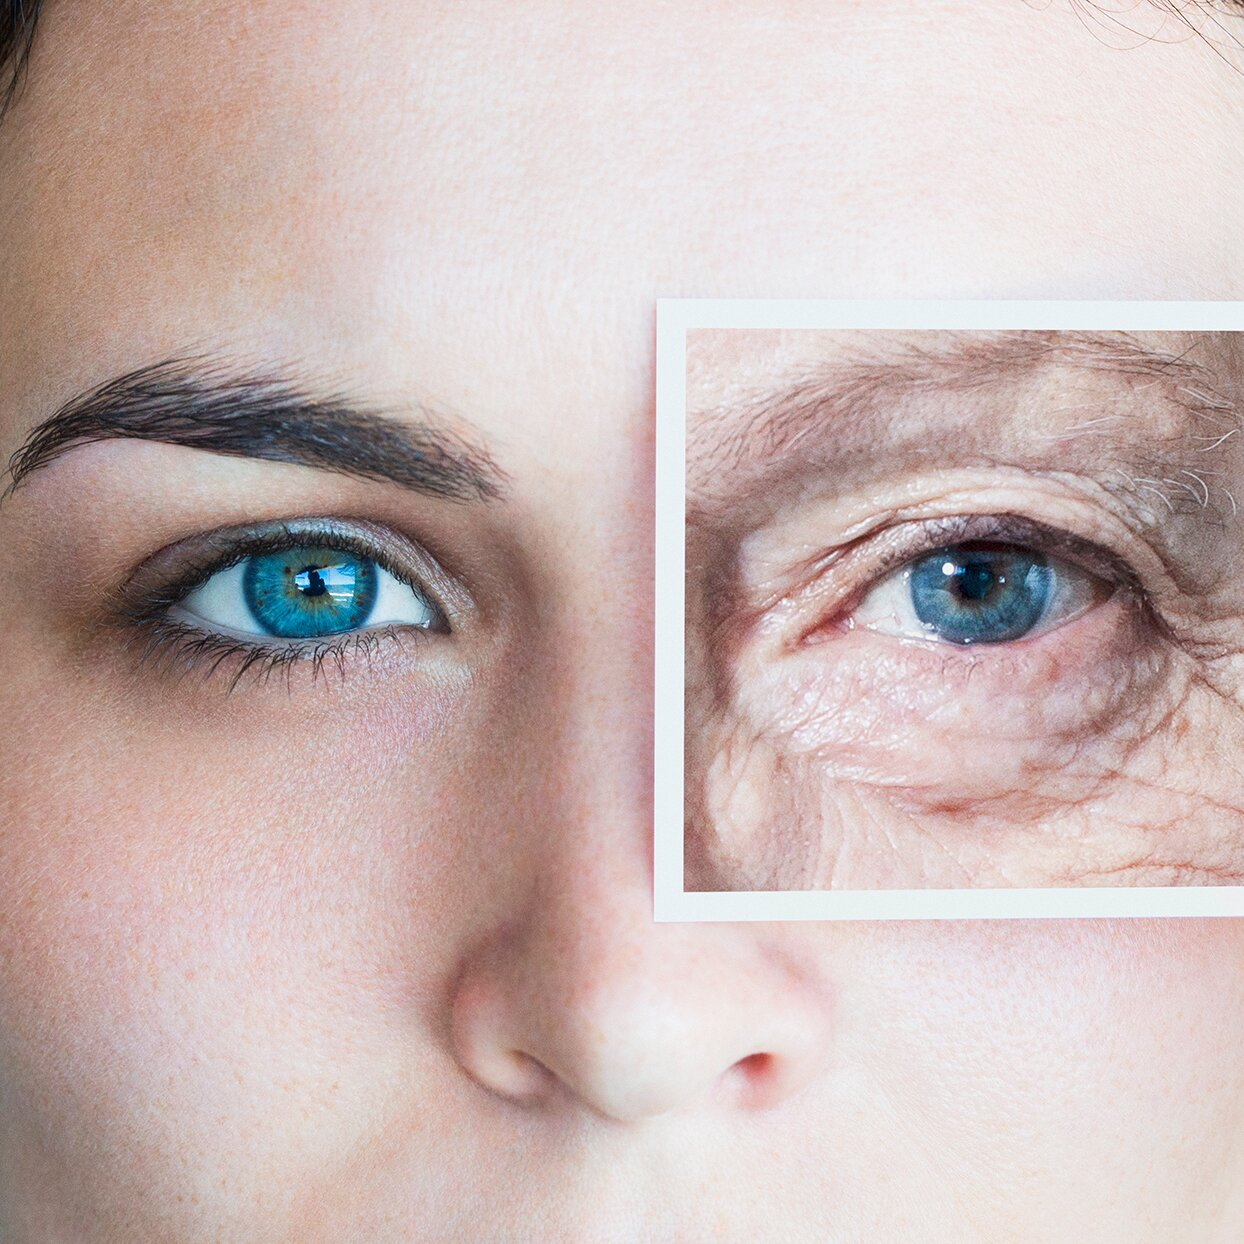 The 6 Everyday Habits That Can Cause Wrinkles